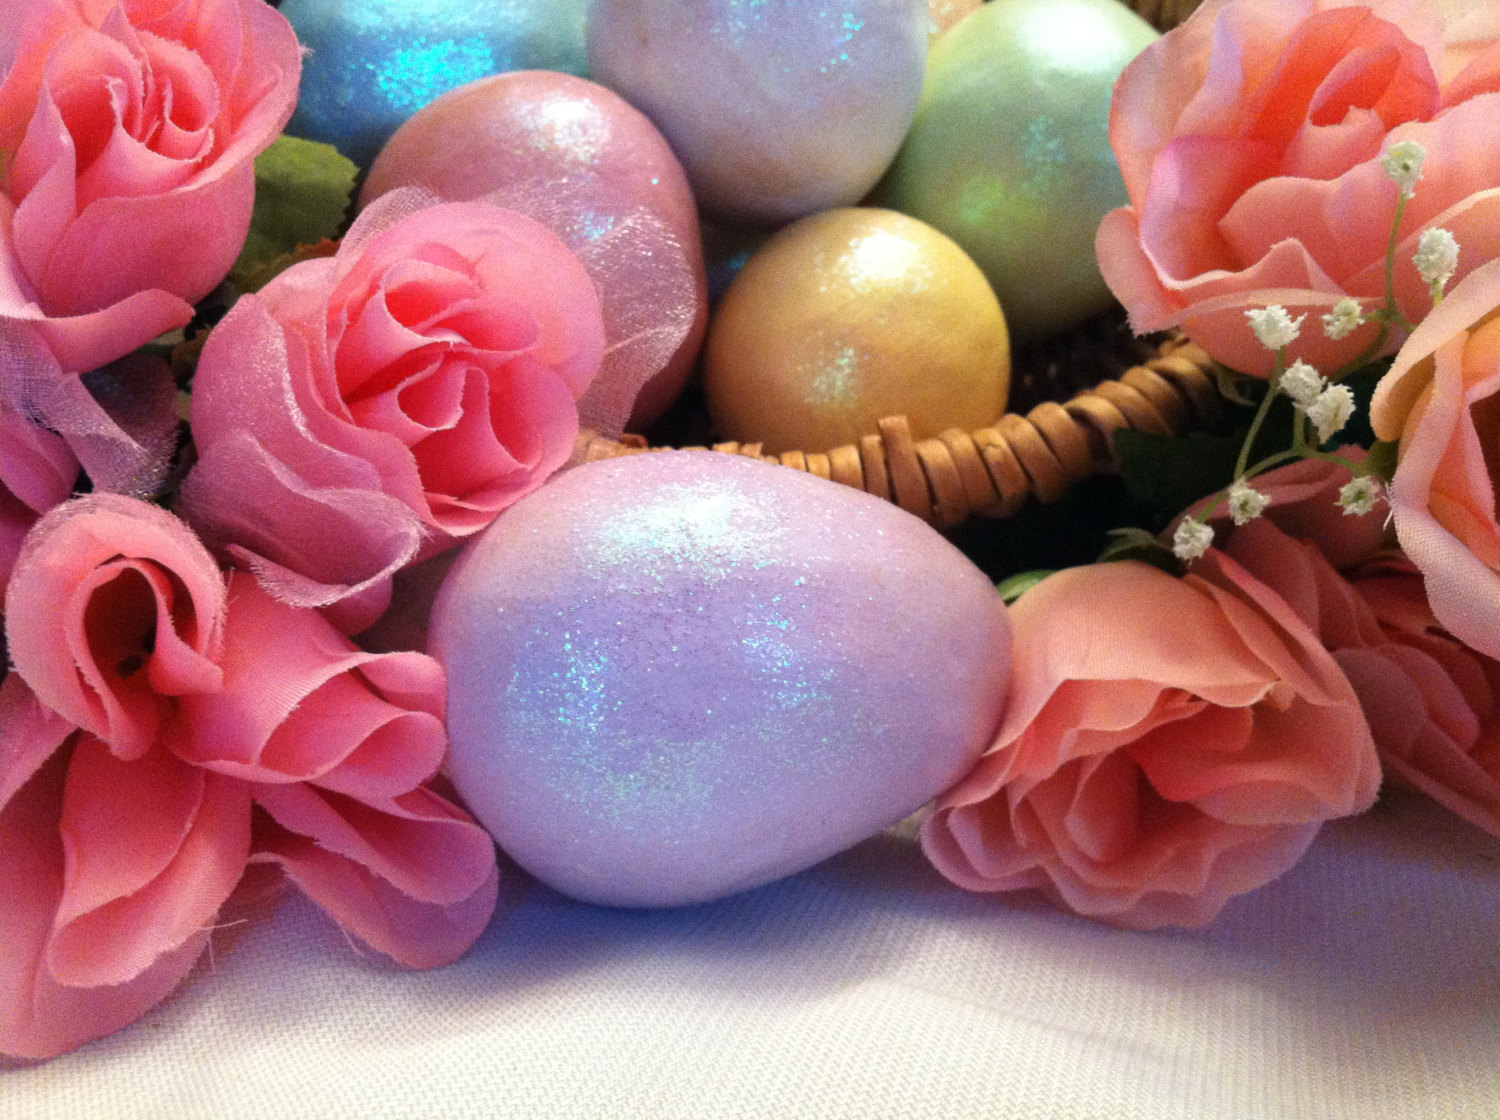 Ceramic Pastel lavender Colored Egg for Easter Display -glitter glazed and with